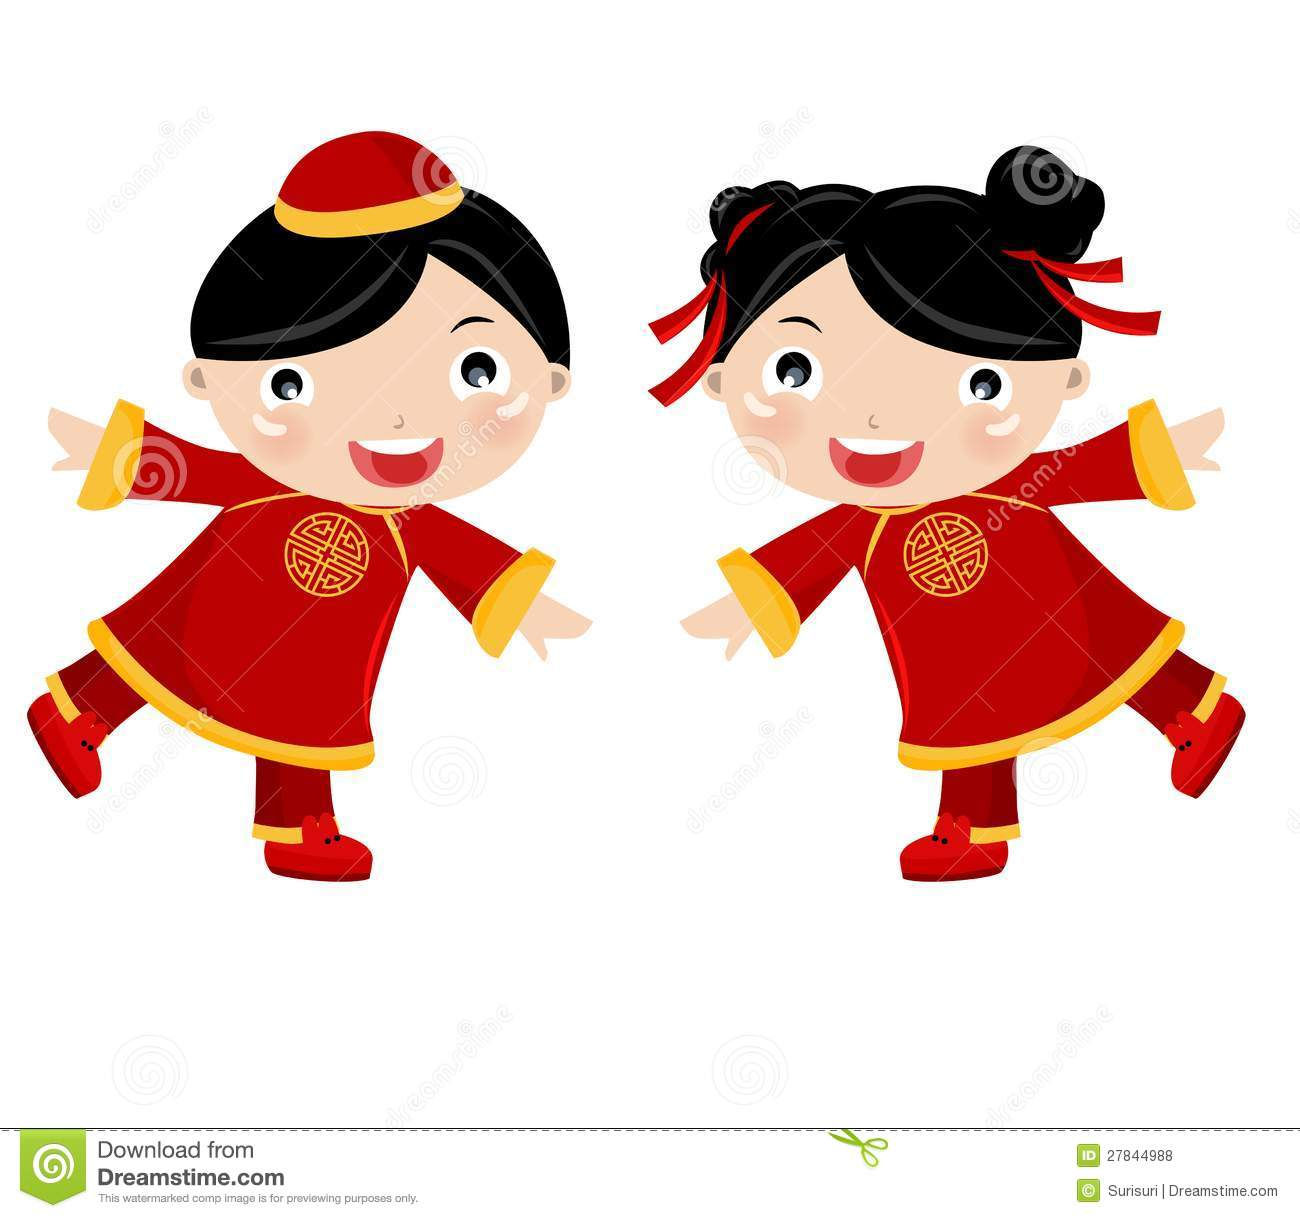 Chinese Girl-Boy Royalty Free Stock Photos - Image: 27844988